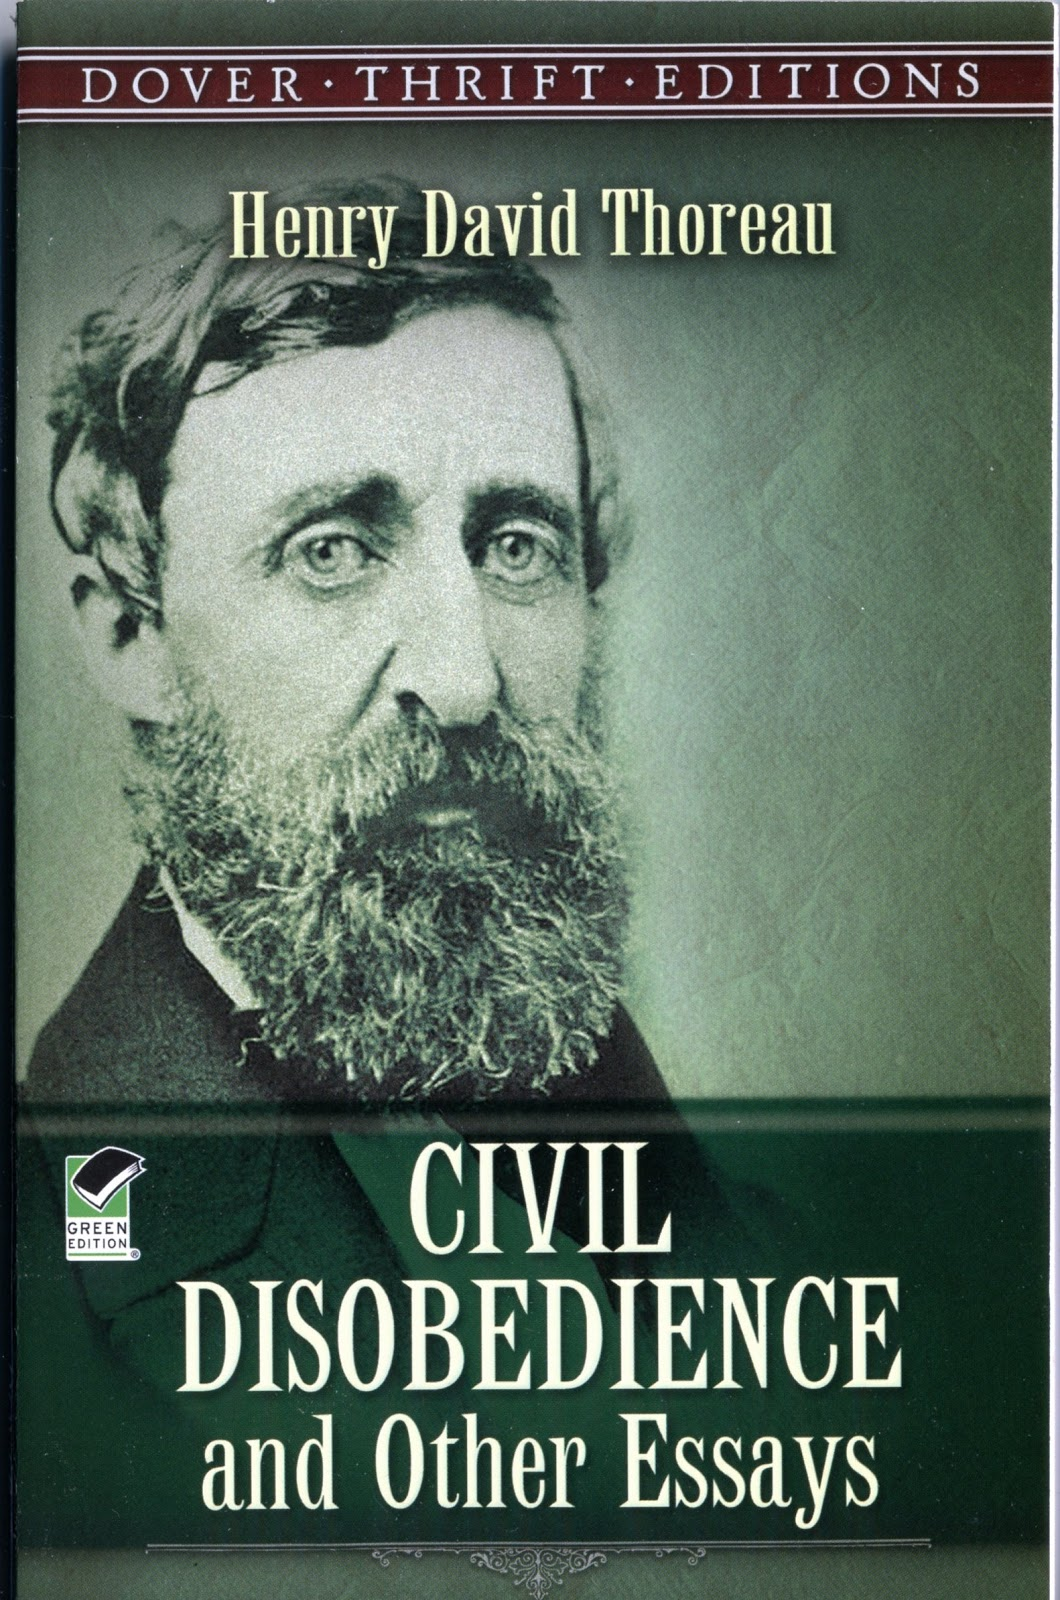 civil disobedience by henry david thoreau Henry david thoreau wrote the essay civil disobedience to show his opposition to slavery and american imperialism his essay has influenced many.